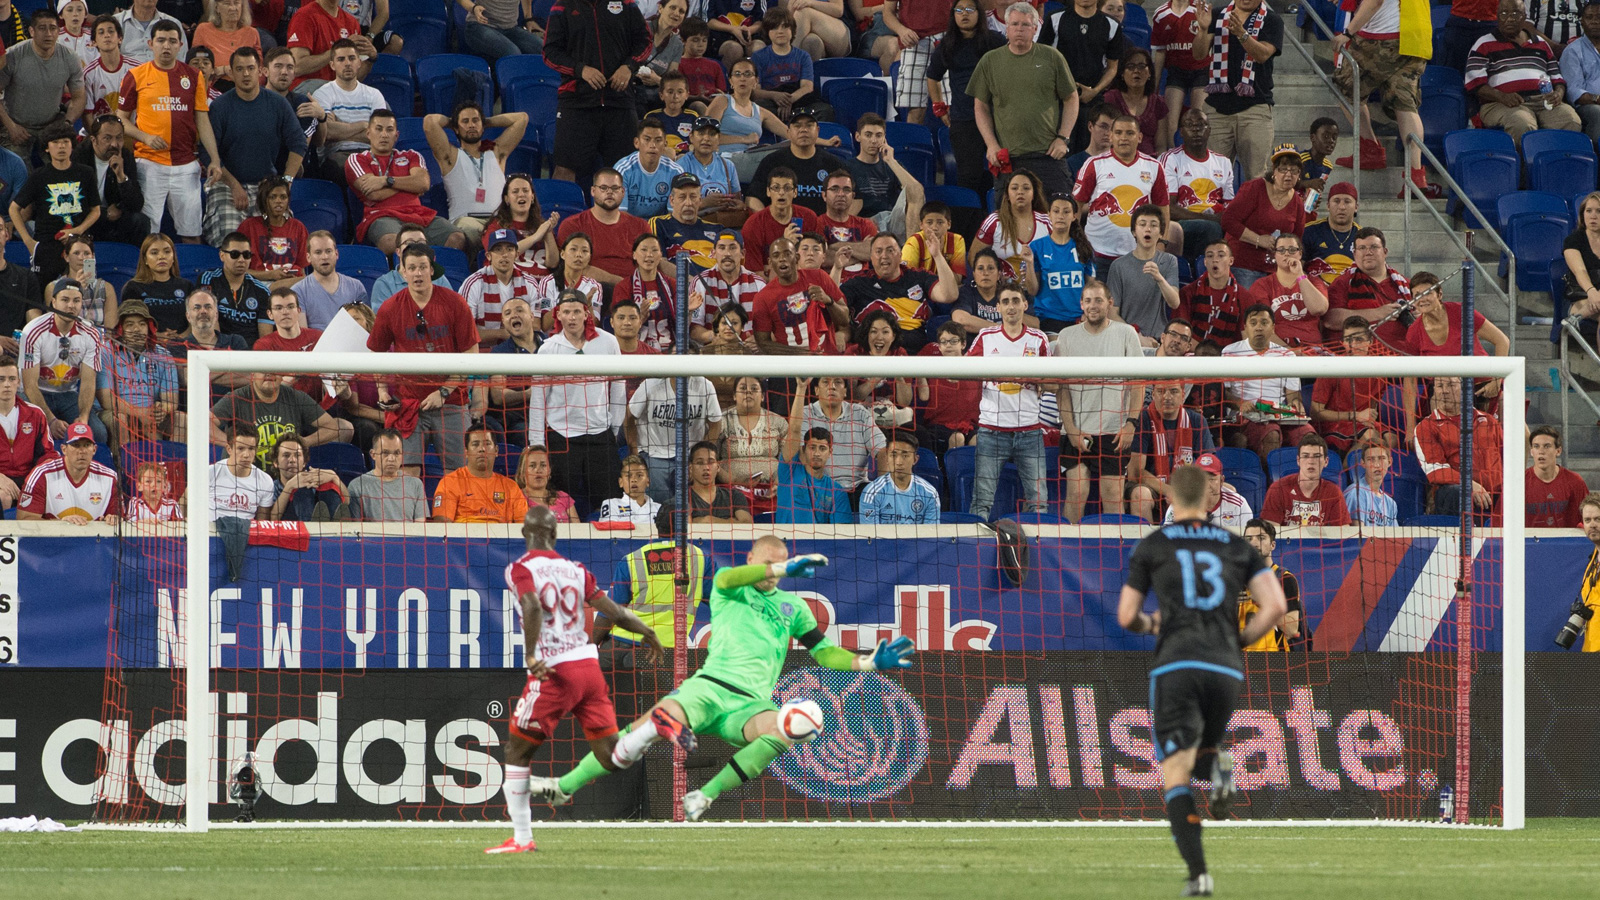 NYCFC goalkeeper Josh Saunders makes a save on Red Bulls forward Bradley Wright-Phillips in the inaugural match between the two clubs, won by the Red Bulls 2-1.